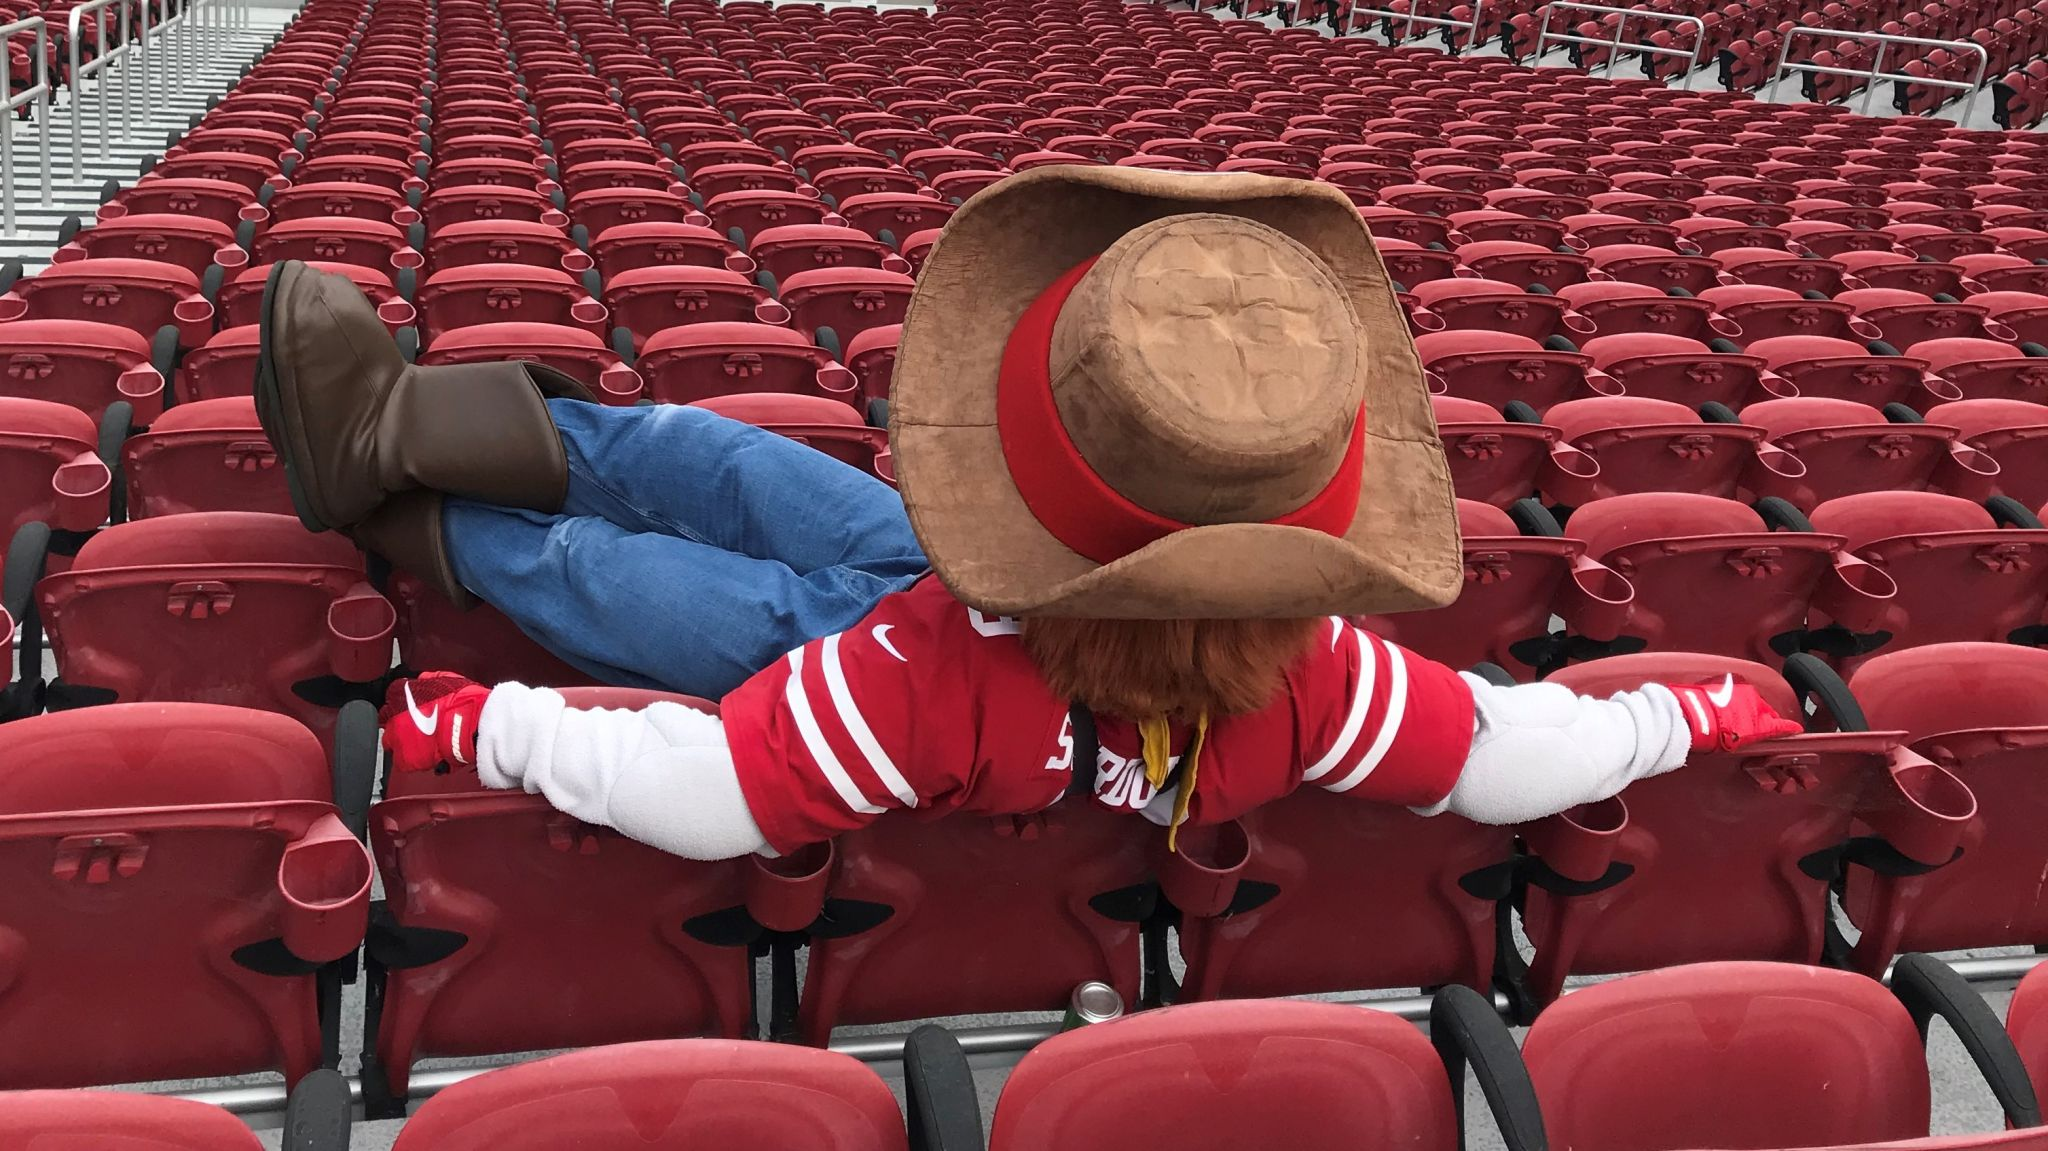 49ers mascot Sourdough Sam tells all about performing at Levi's Stadium without fans